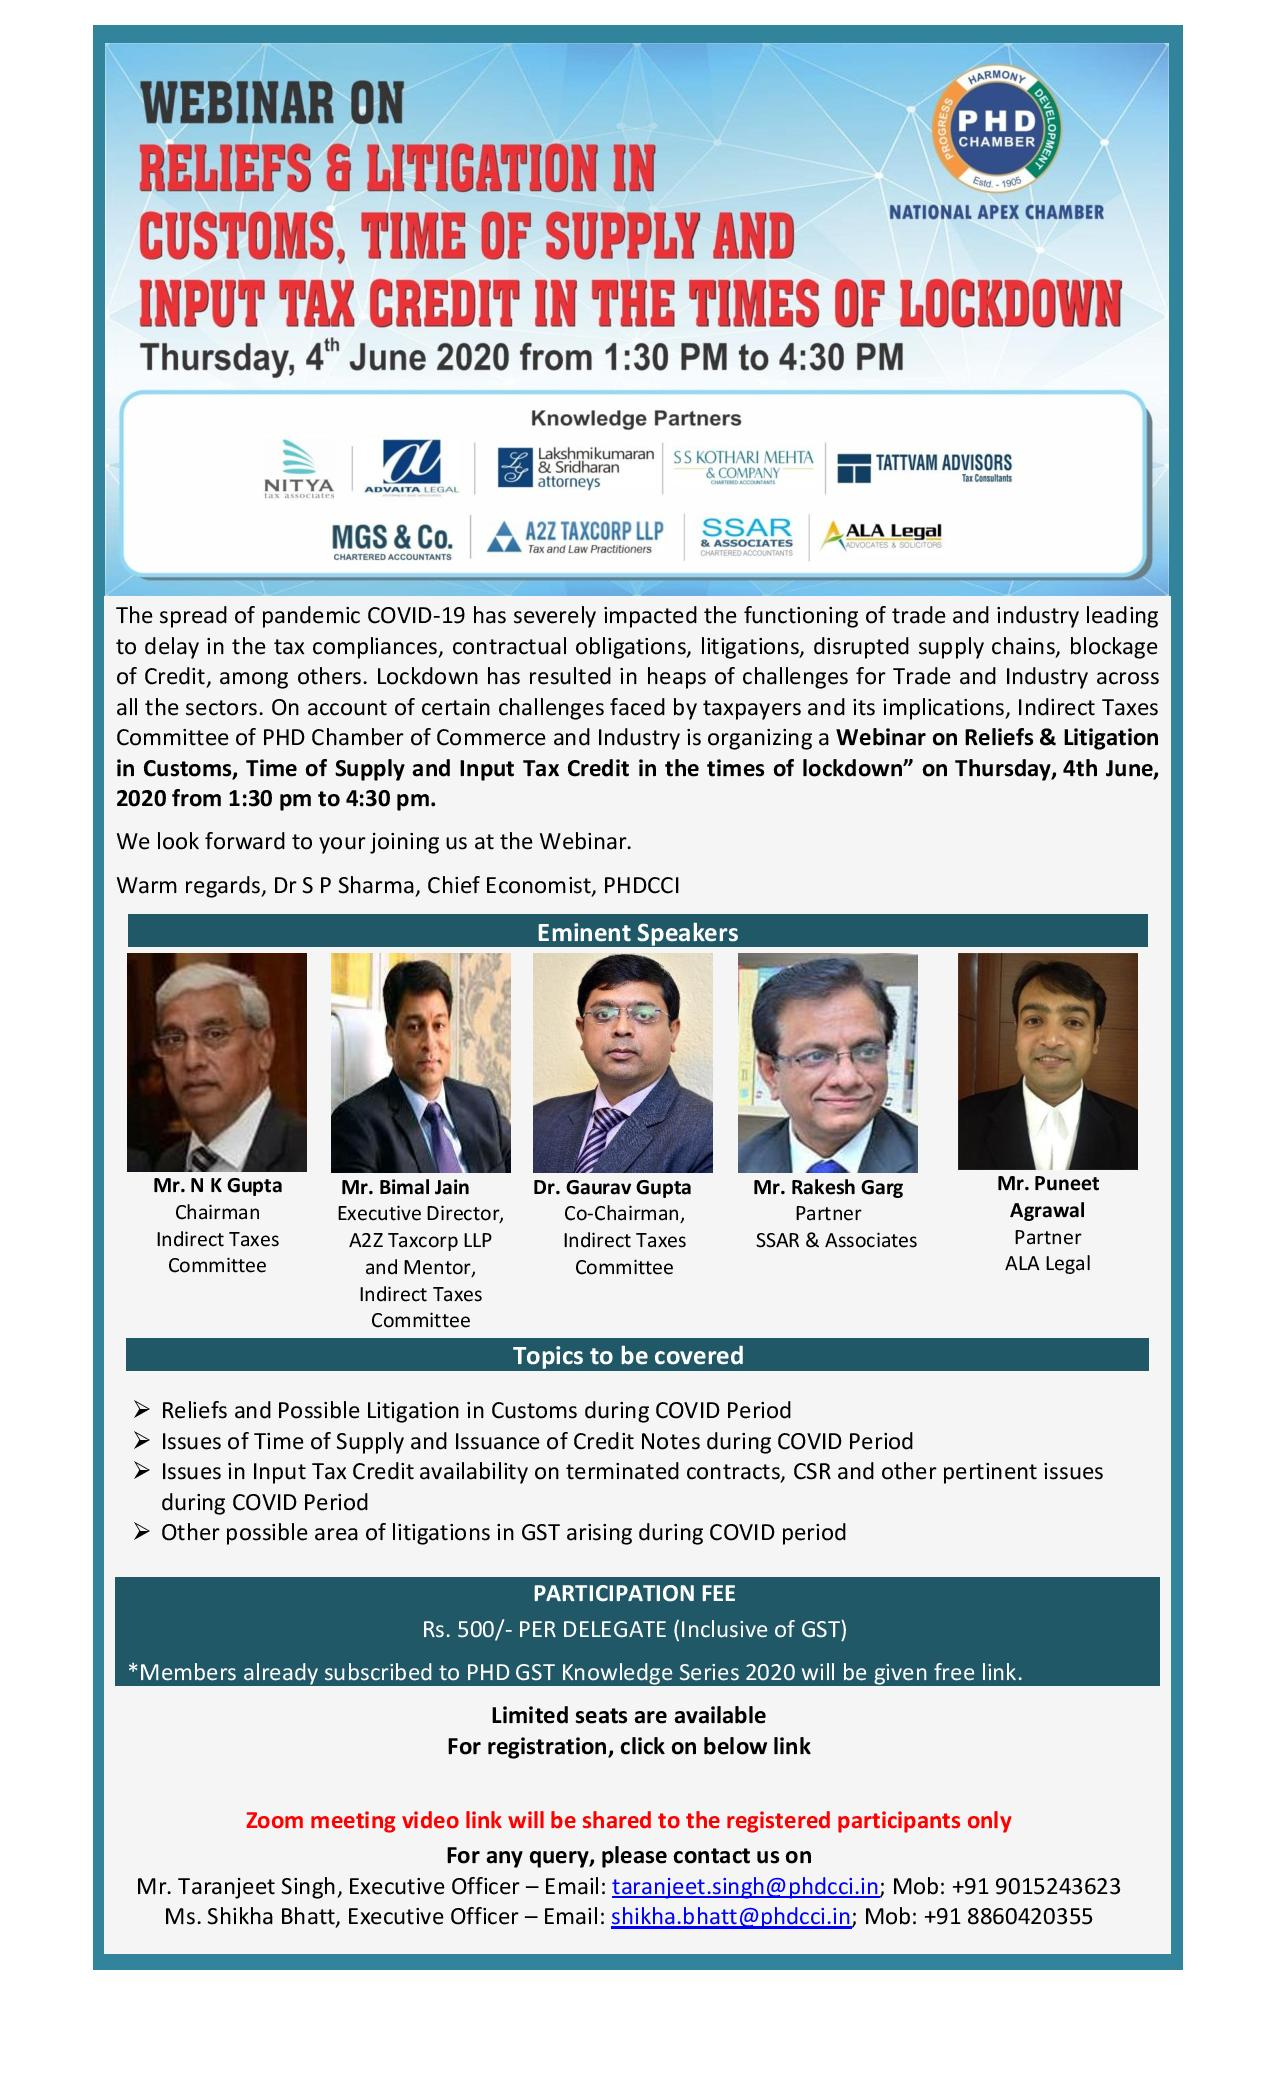 Webinar on Reliefs & Litigation in Customs, Time of Supply and Input Tax Credit in the times of lockdown